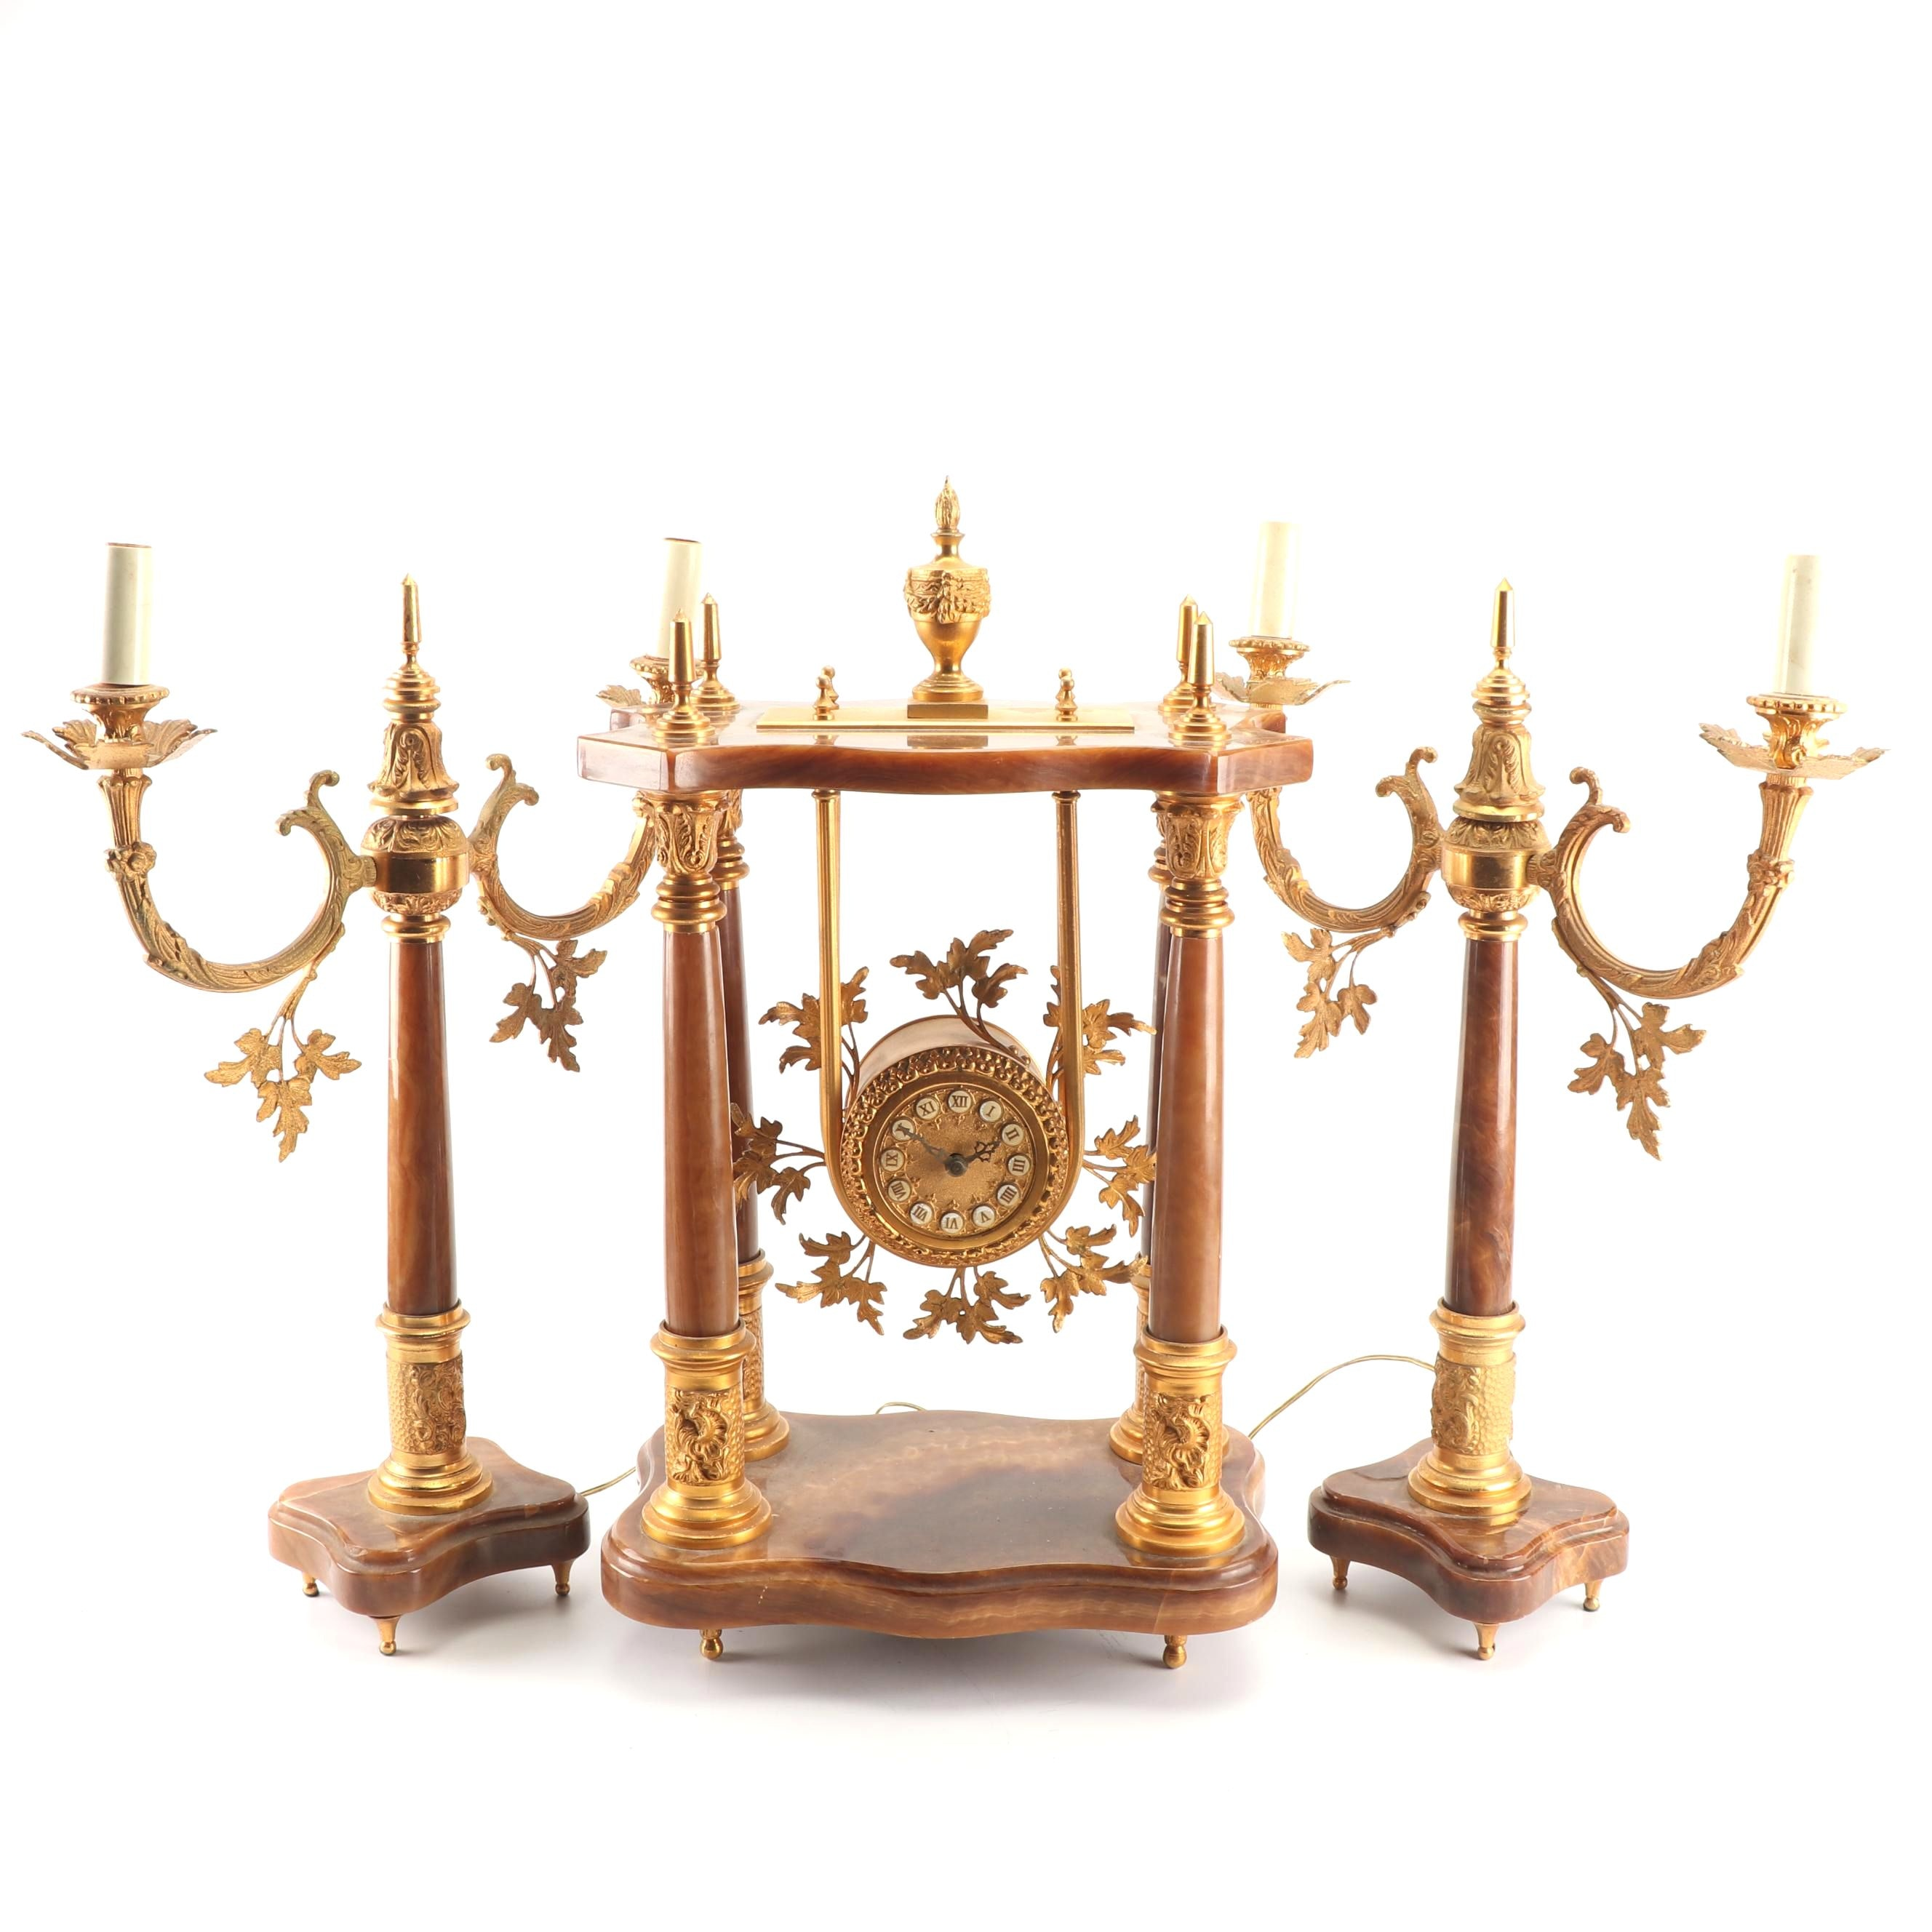 Gilt Spelter and Stone Mantle Clock With Electrified Candelabra